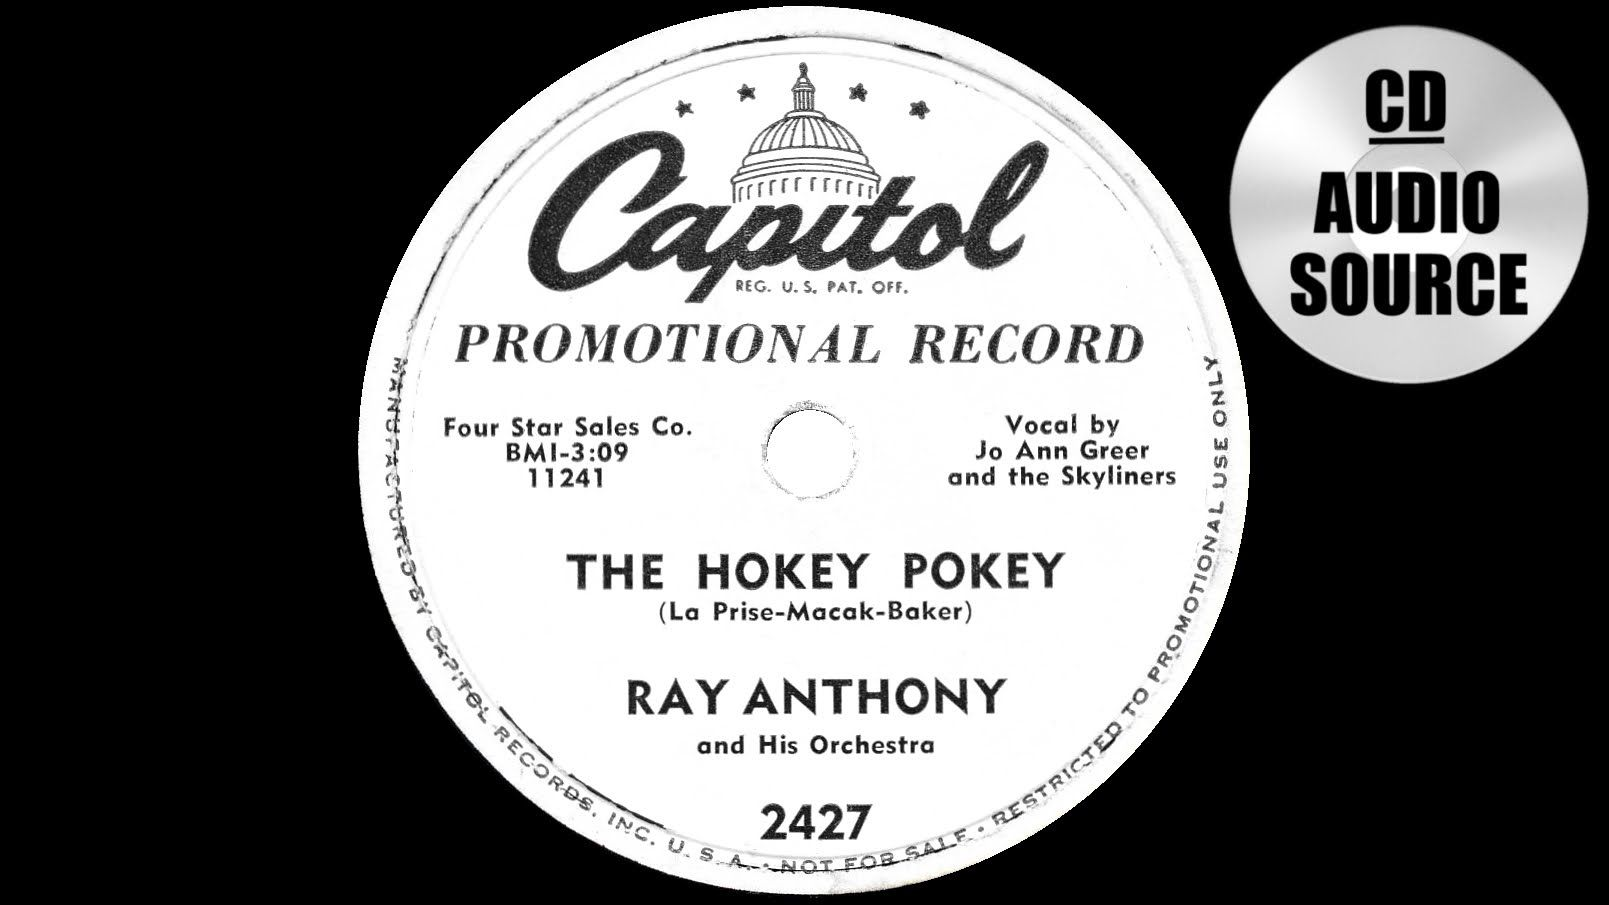 From 1953 - The song that started the whole craze The Hokey Pokey ...